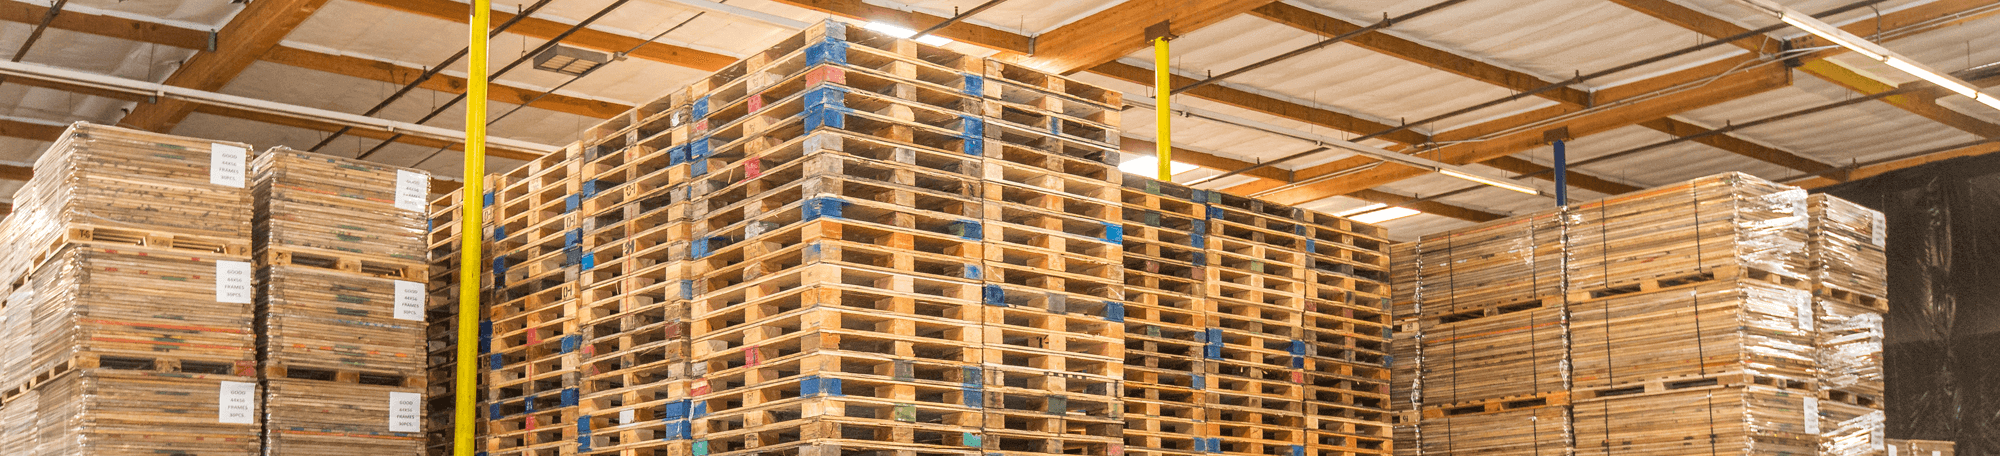 Custom Pallet Products Manufacturer in Oakland, Bay Area